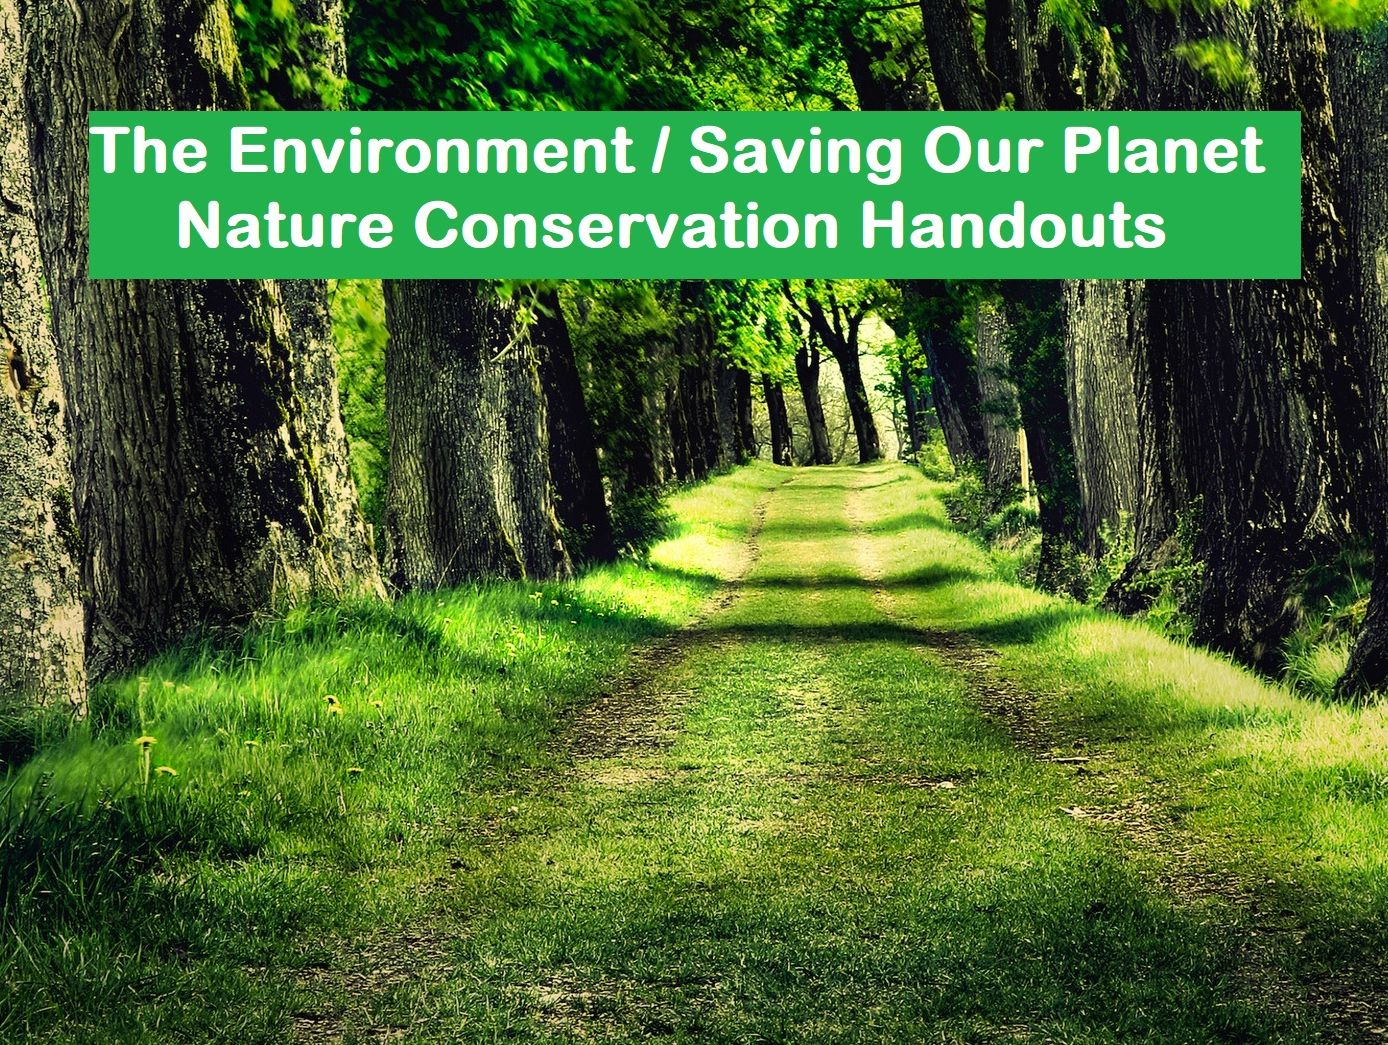 The Environment/ Saving Our Planet / Nature Conservation Handouts (SAVE 80%)